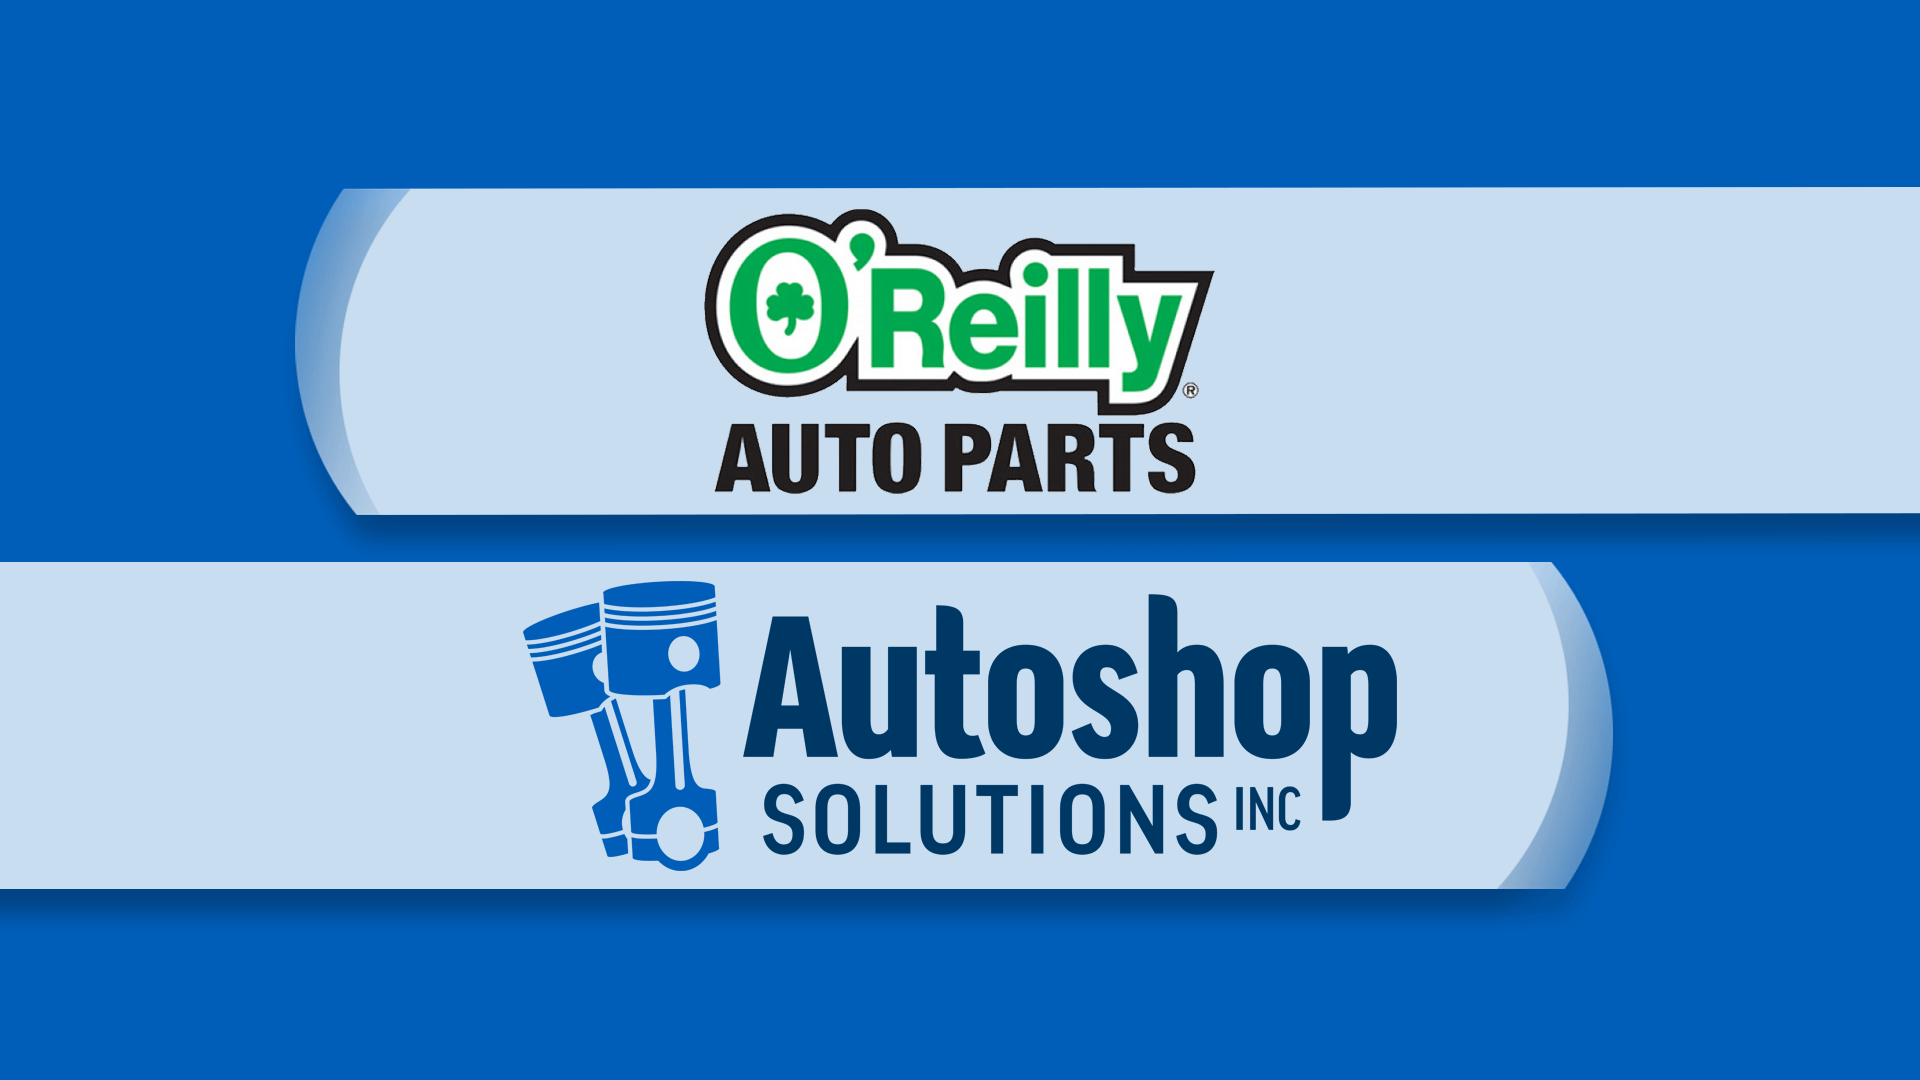 O'Reilly partnership with Autoshop Solutions